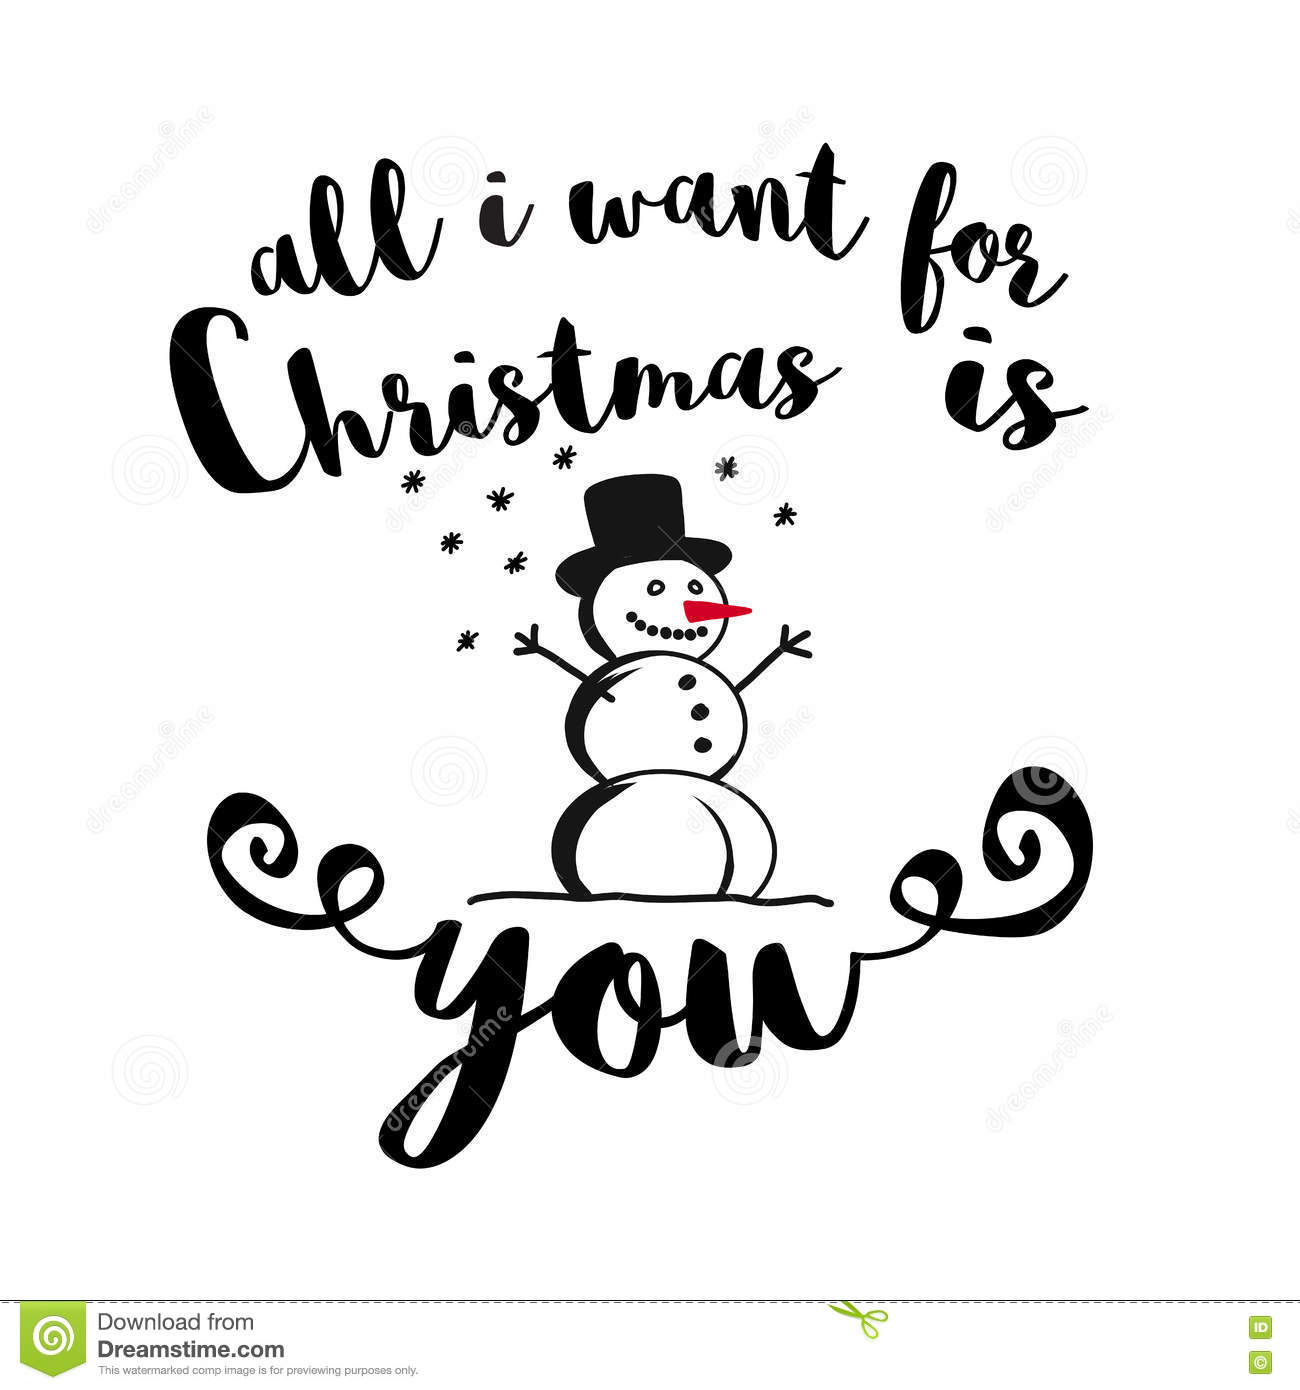 All i want for christmas is you quotes